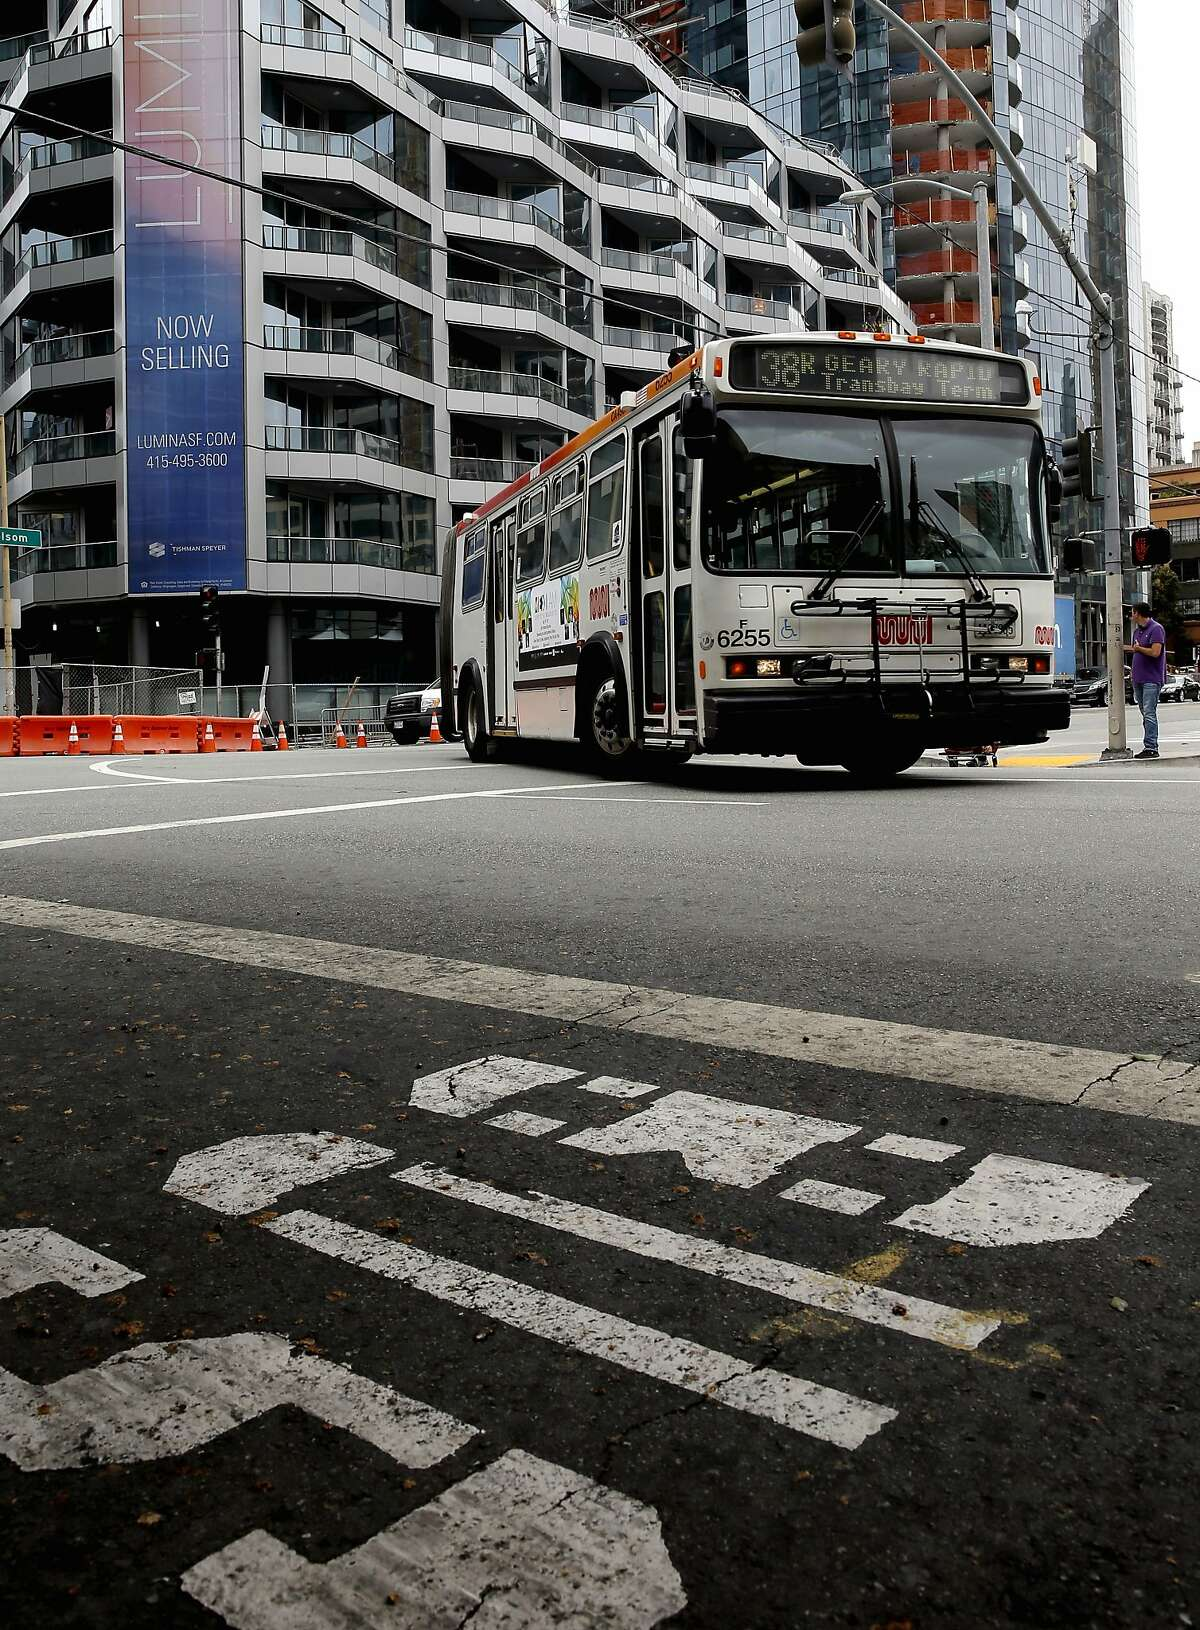 Residential construction is seen on the corner of Folsom and Main Streets as a MUNI bus pulls into the Transbay Terminal, in San Francisco, Calif., on Tues. July 21, 2015. San Francisco Mayor ED Lee announced today a plan to charge transit development fees on residential, office and commercial construction projects.